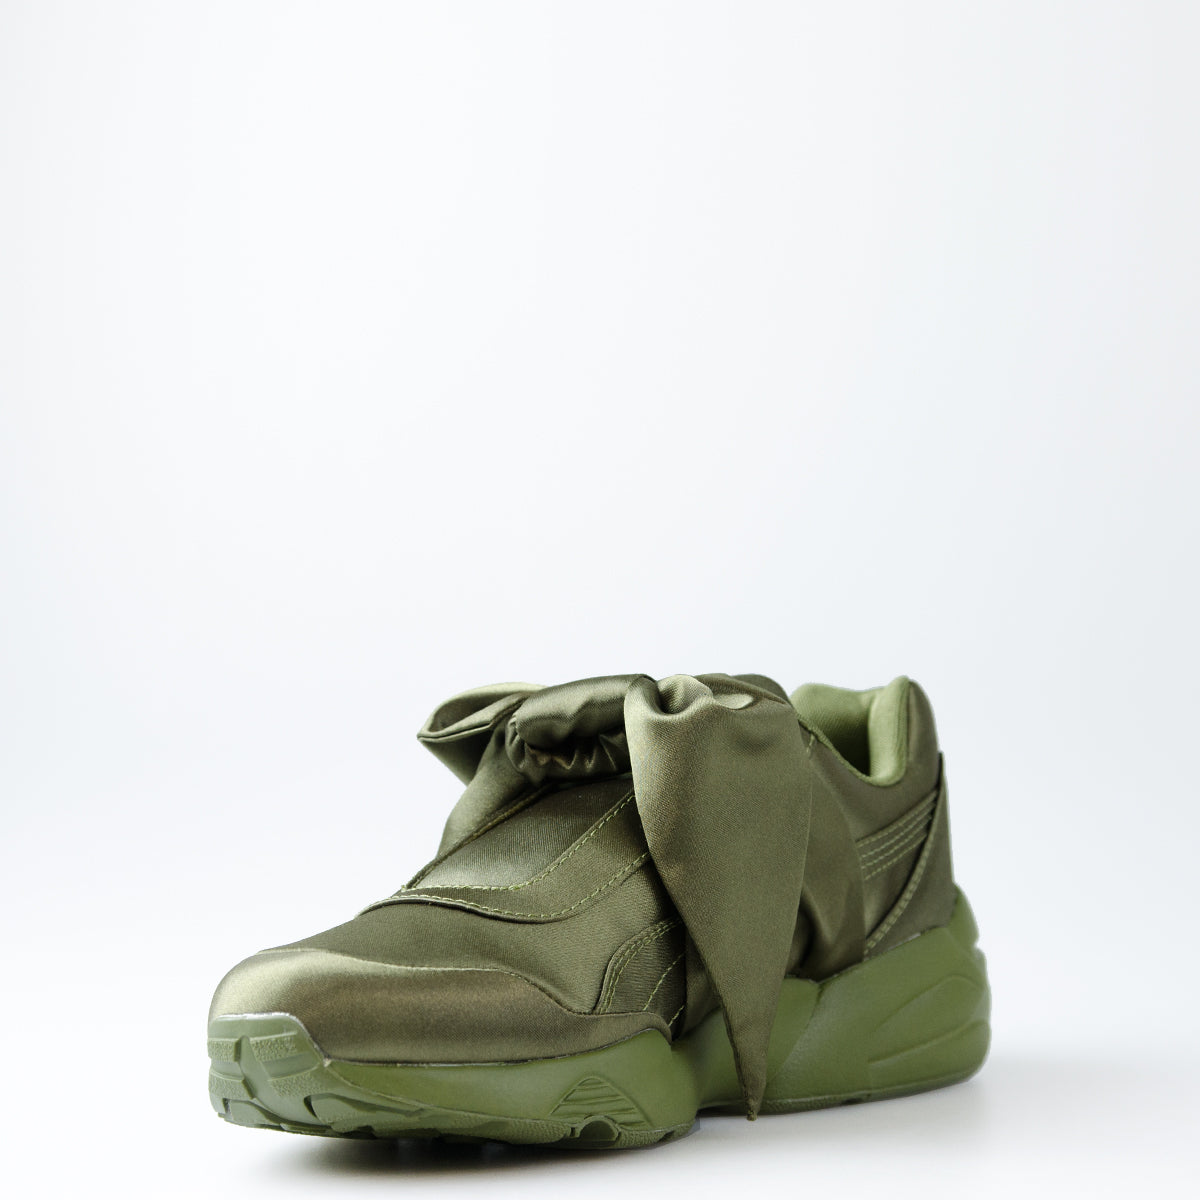 new style 18163 fea74 Women's Puma X Fenty by Rihanna Bow Sneakers Olive Green ...